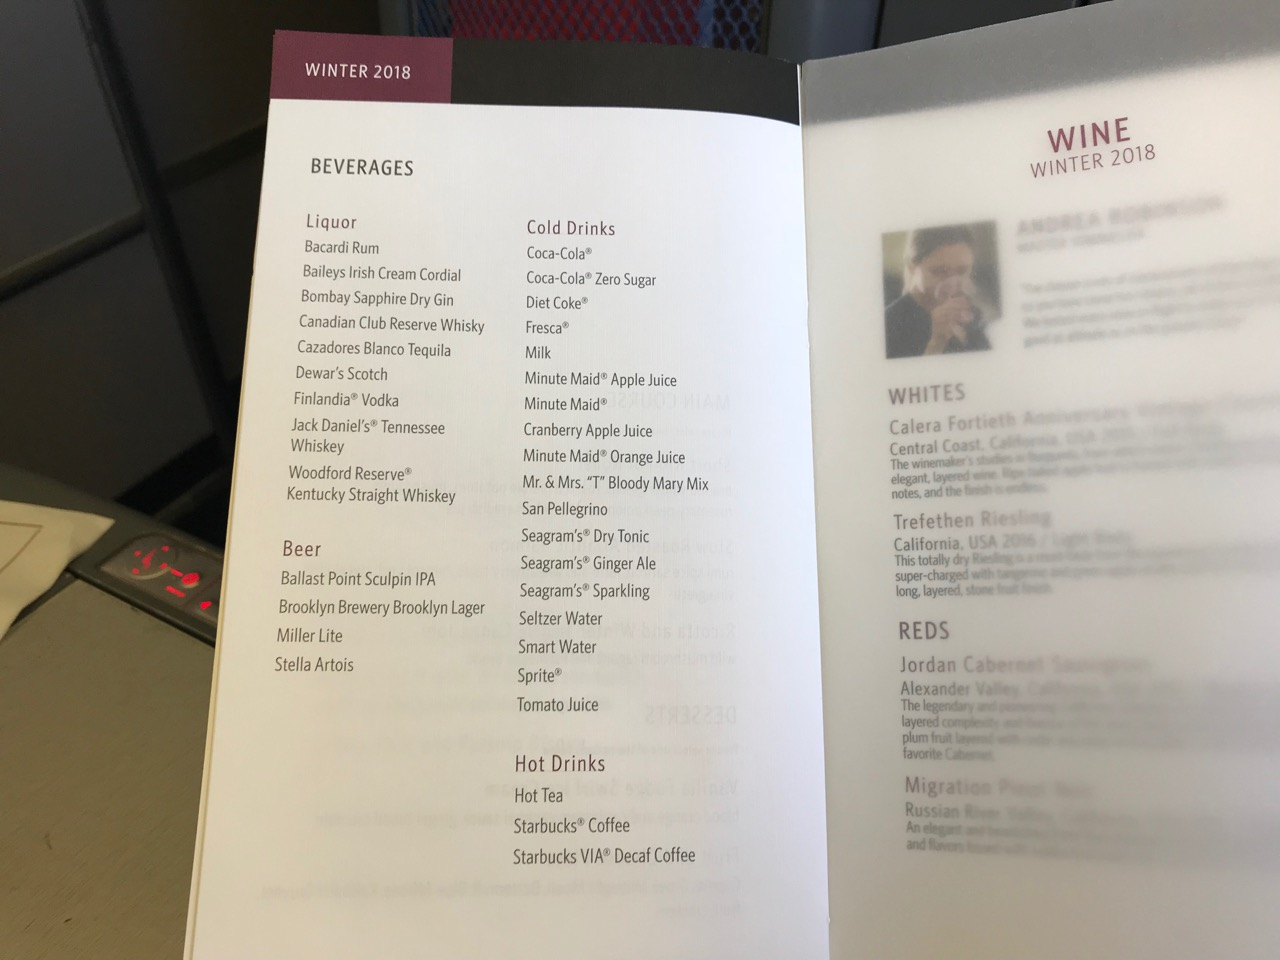 Delta In-Flight Meal/Food Service: The Definitive Thread